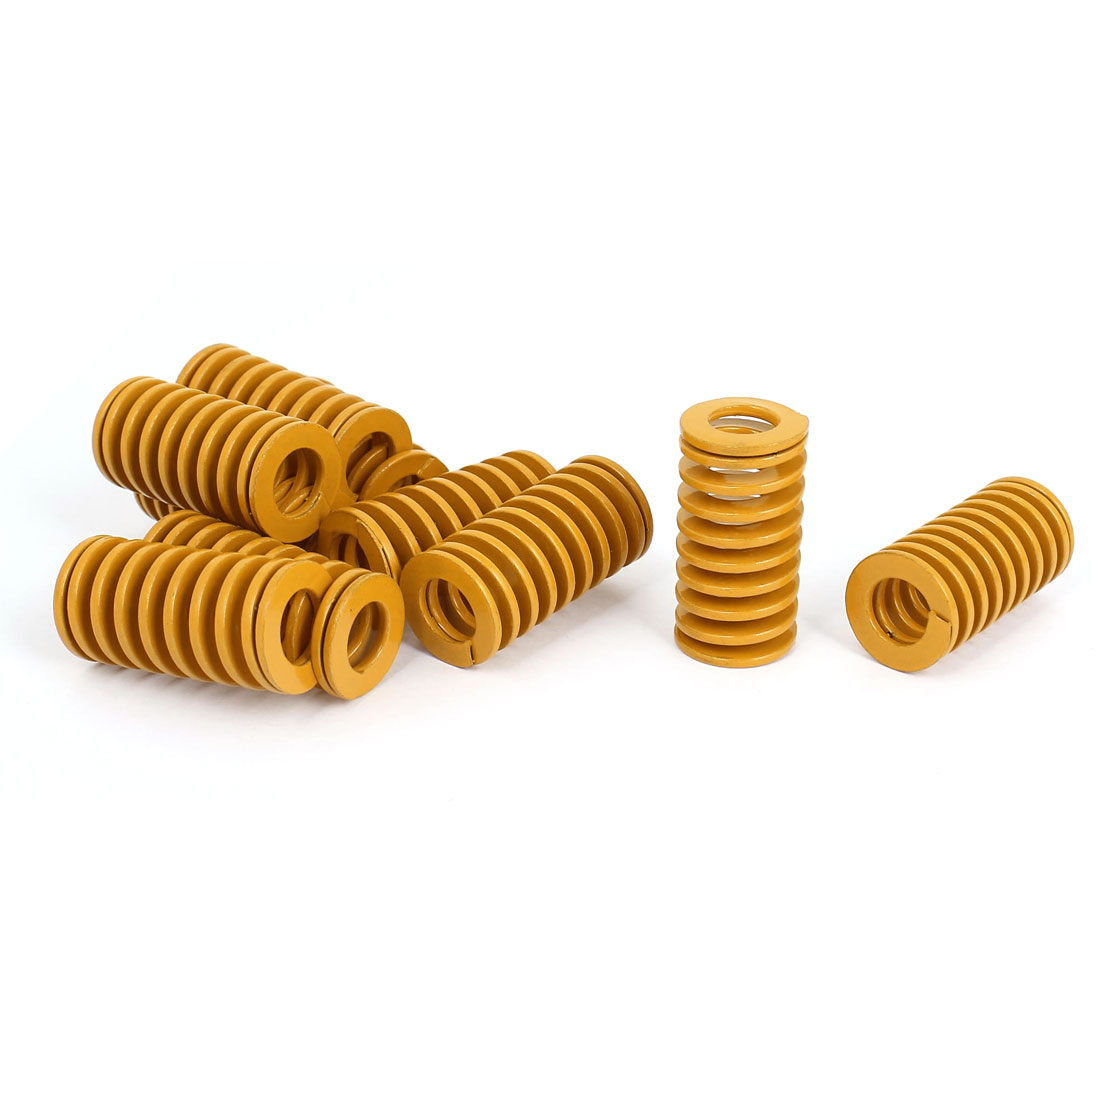 20mm OD 40mm Long Light Load Stamping Compression Mold Die Spring Yellow 10pcs